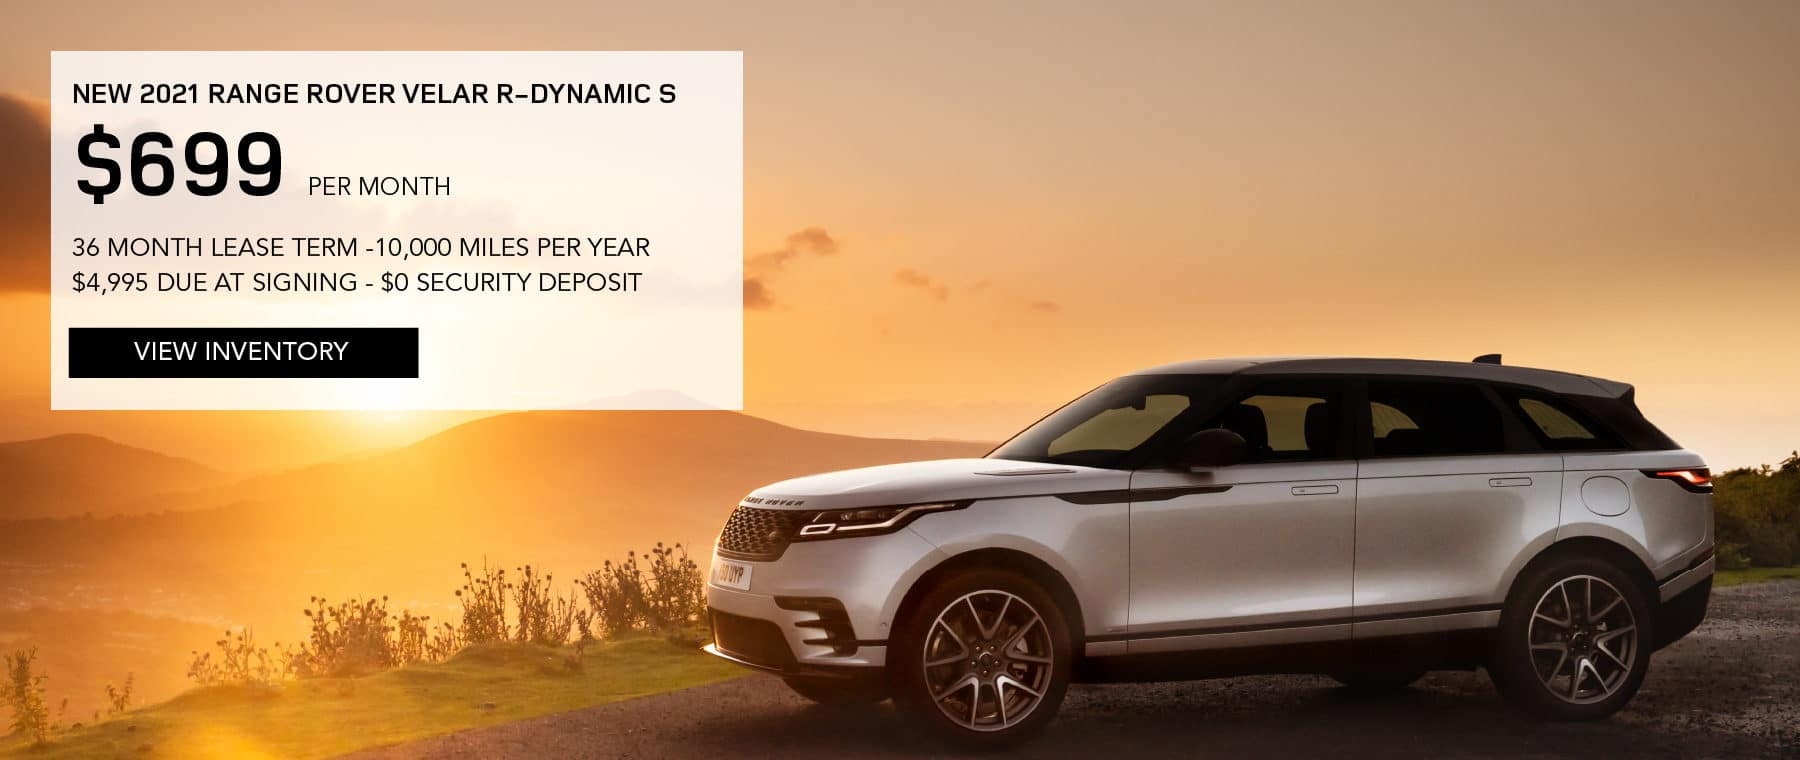 NEW 2021 RANGE ROVER VELAR R-DYNAMIC S. $699 PER MONTH. 36 MONTH LEASE TERM. $4,995 CASH DUE AT SIGNING. $0 SECURITY DEPOSIT. 10,000 MILES PER YEAR. EXCLUDES RETAILER FEES, TAXES, TITLE AND REGISTRATION FEES, PROCESSING FEE AND ANY EMISSION TESTING CHARGE. ENDS 8/2/2021. VIEW INVENTORY. SILVER RANGE ROVER VELAR PARKED AT SUNSET.